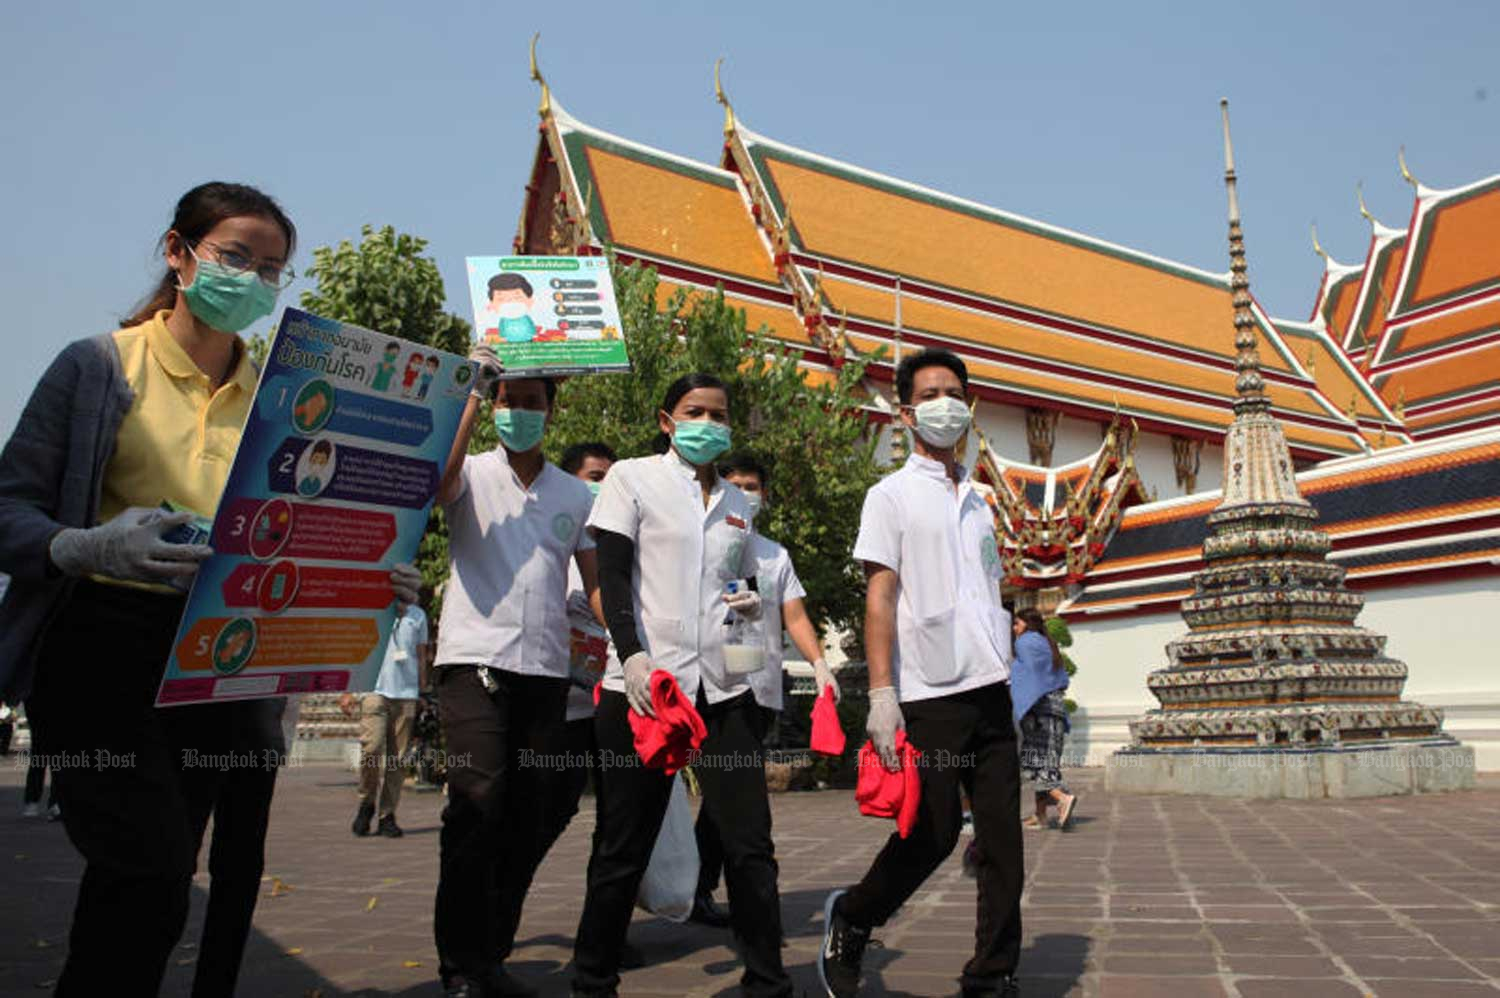 Health workers clean Wat Phra Chetuphon Wimon Mangkhalaram in Bangkok and share information with the public on how to avoid viral infections on Friday. (Photo by Arnun Chonmahatrakool)